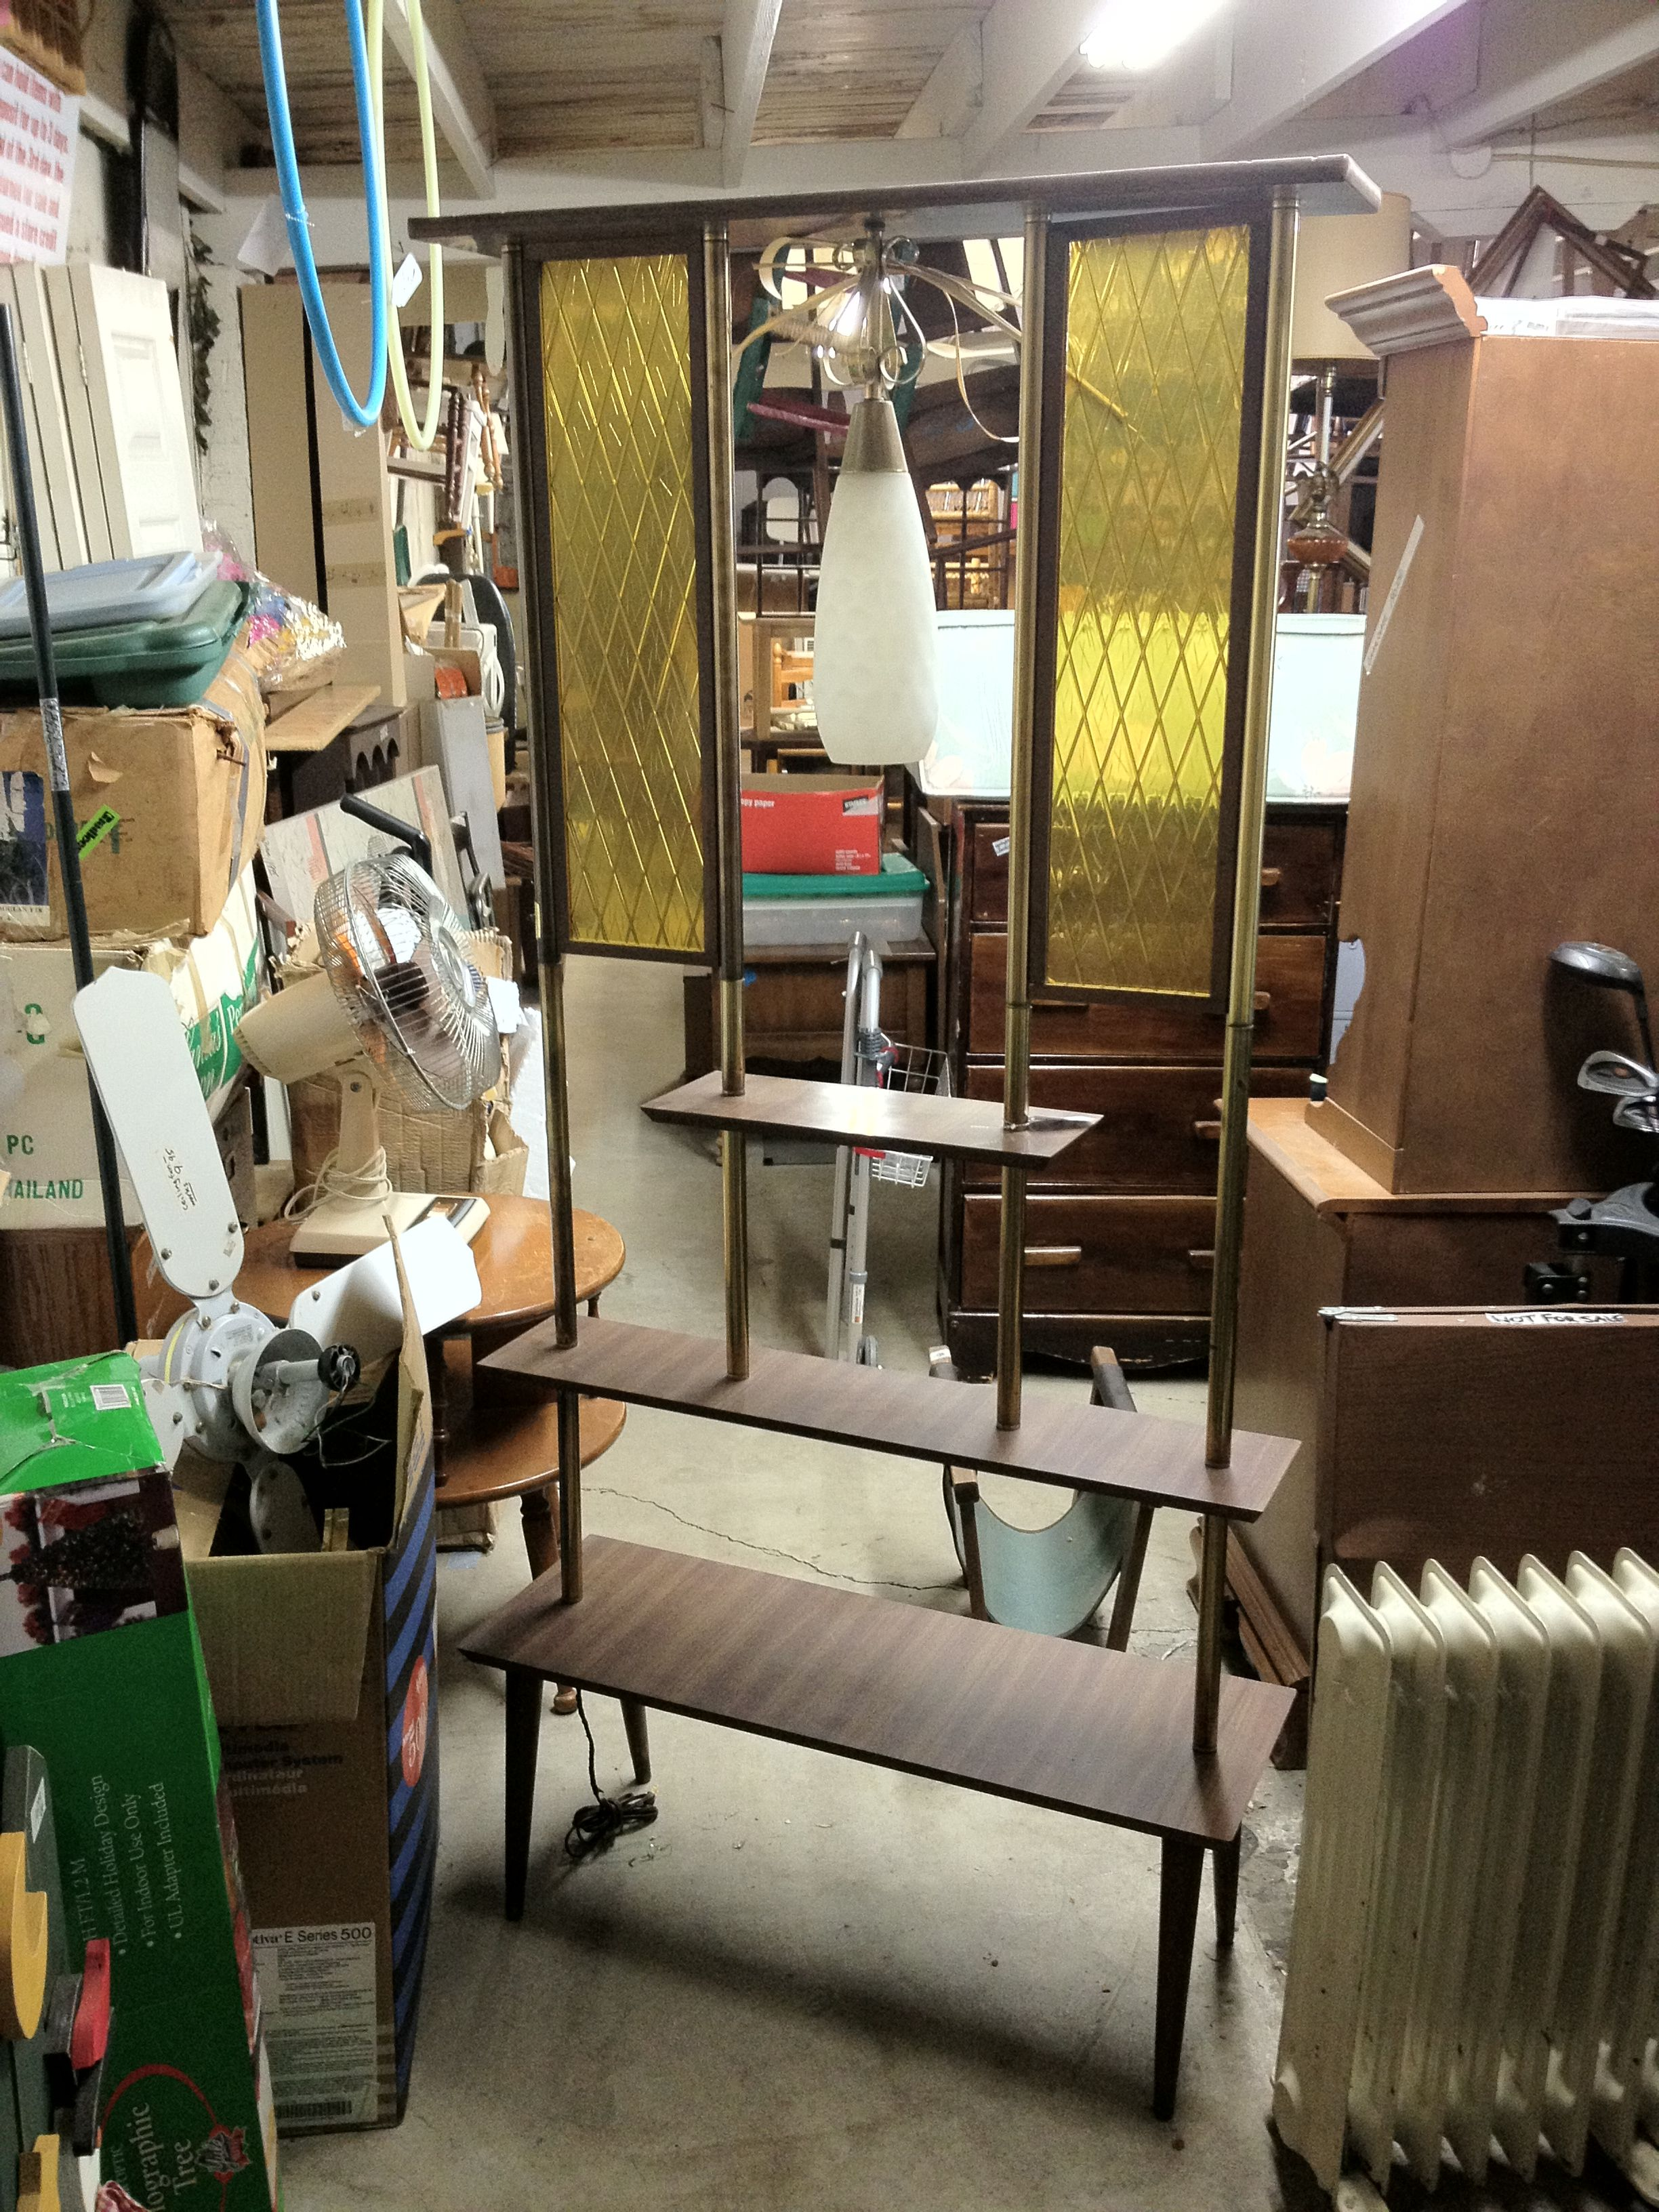 Mid century modern room divider hanging lamp in the middle lol